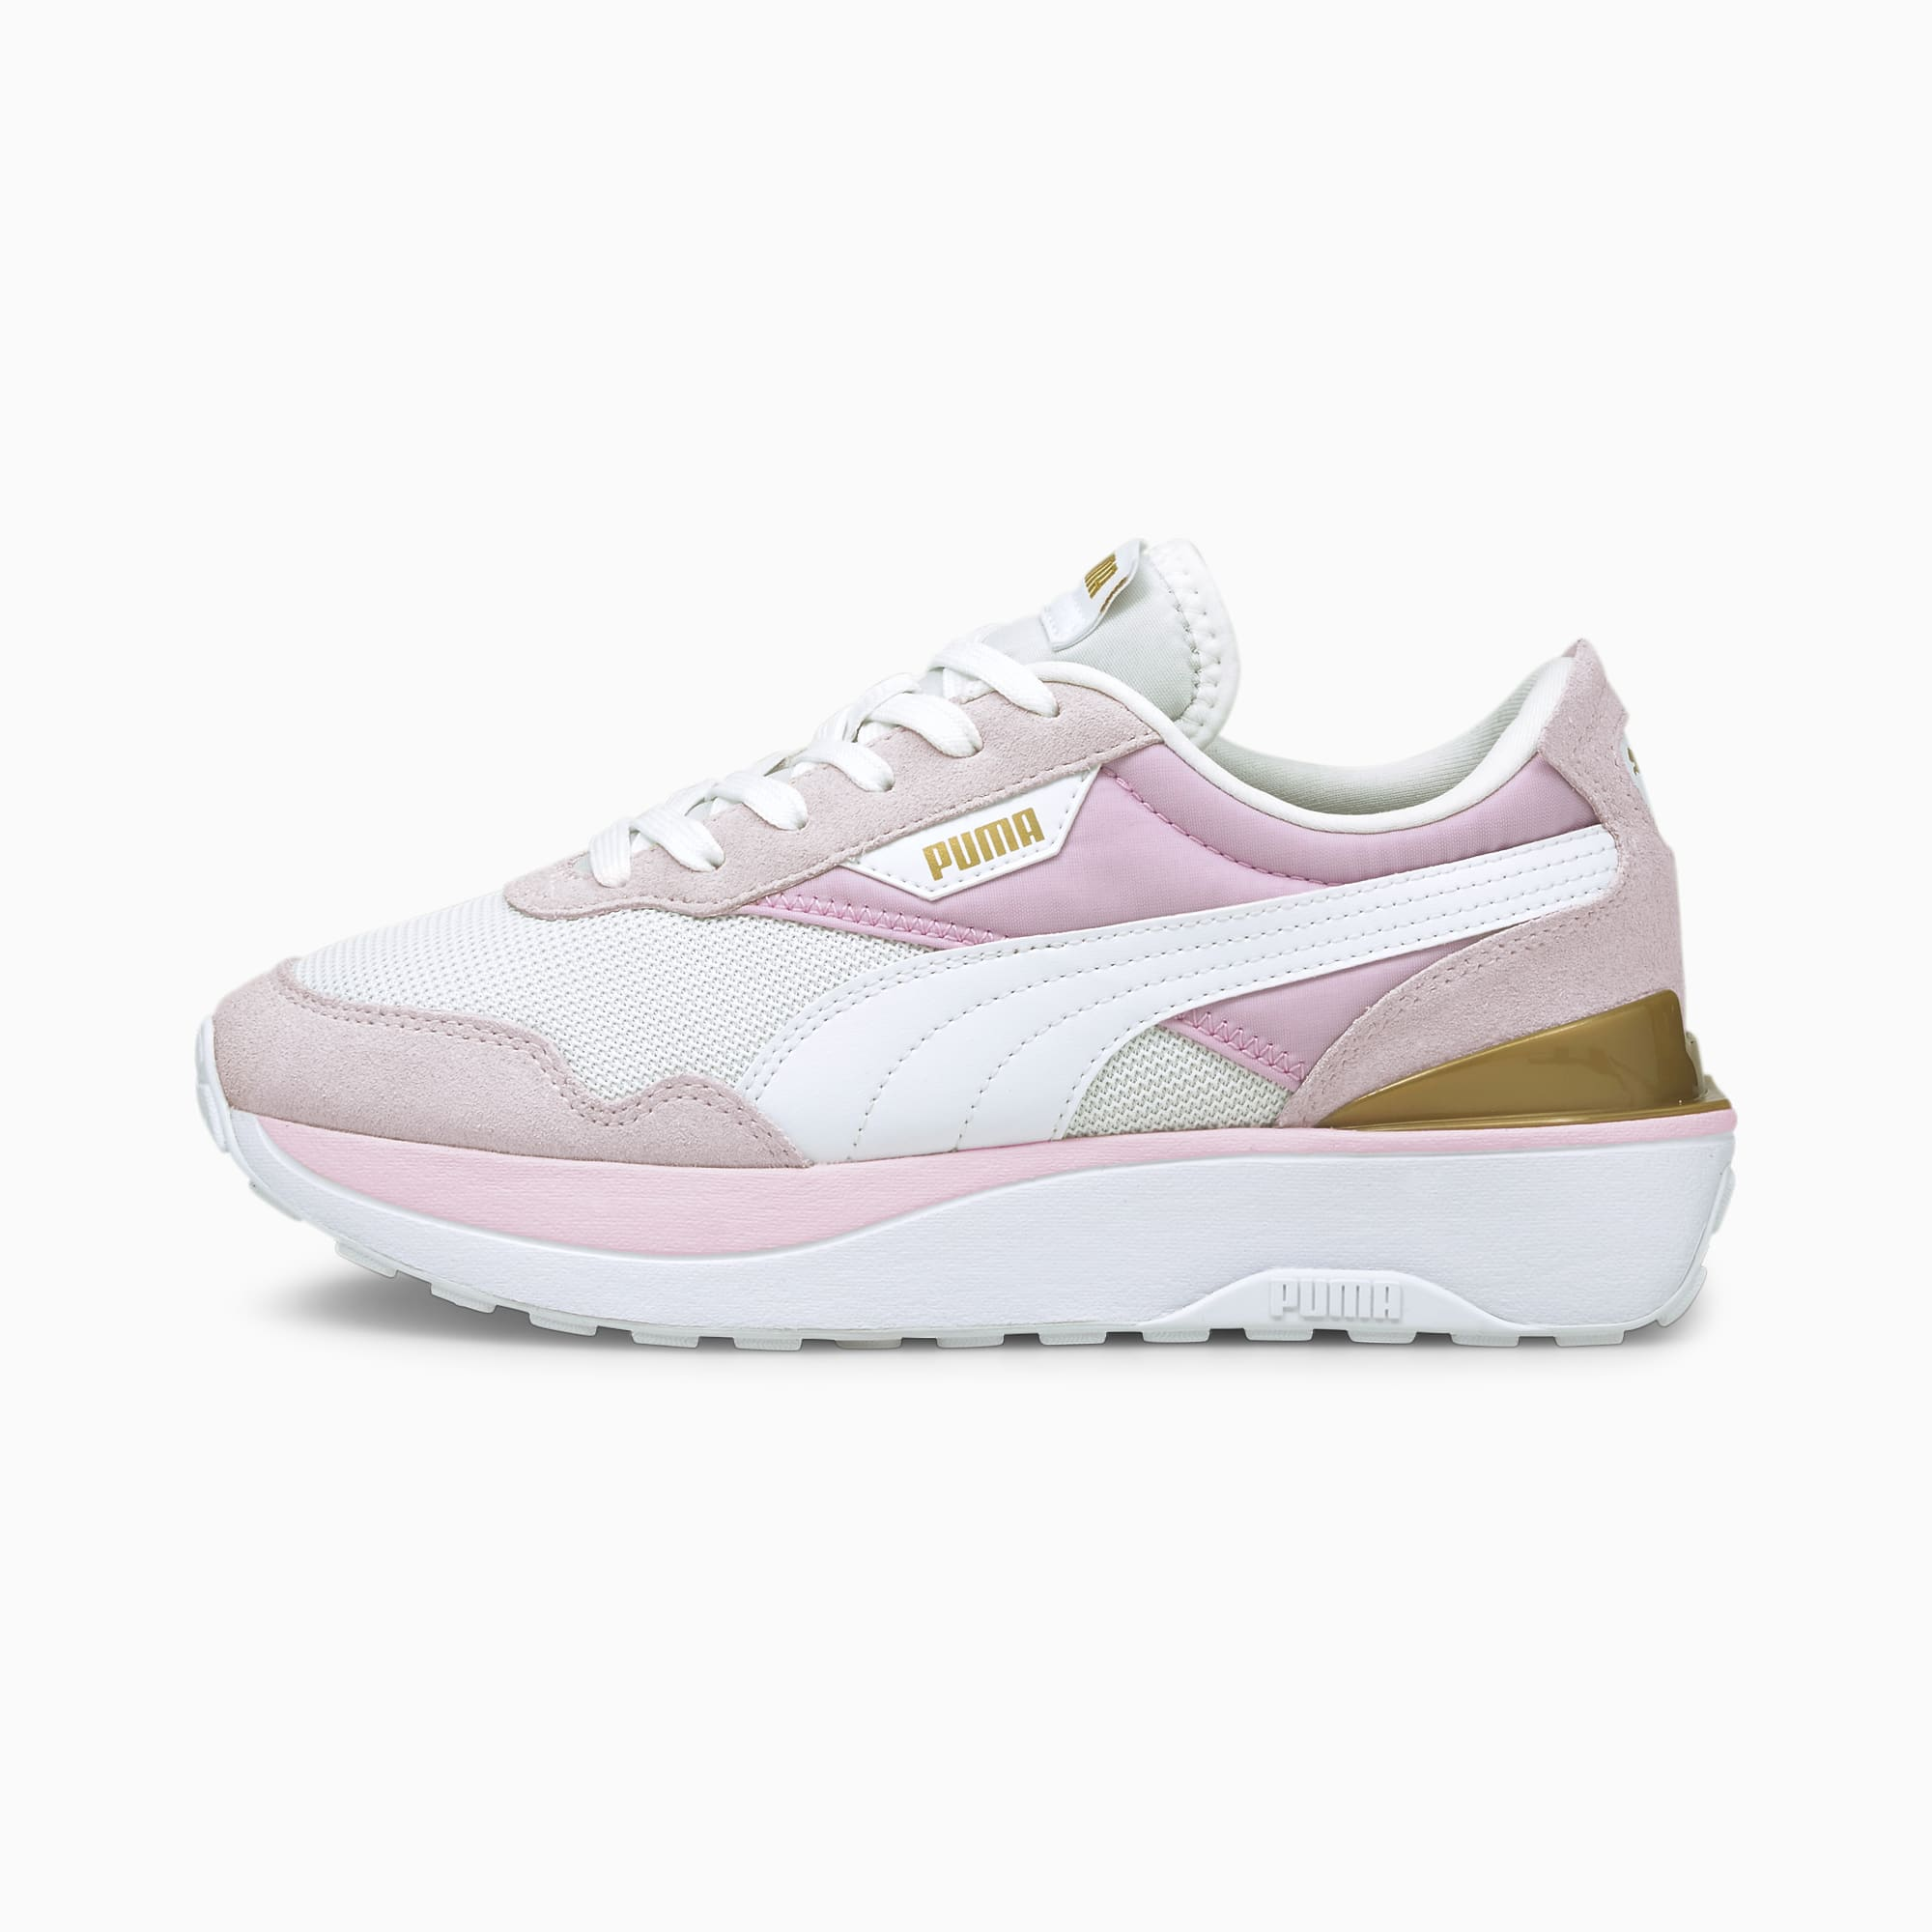 PUMA Cruise Rider Sneakers , Roze/Wit/Aucun, Maat 41